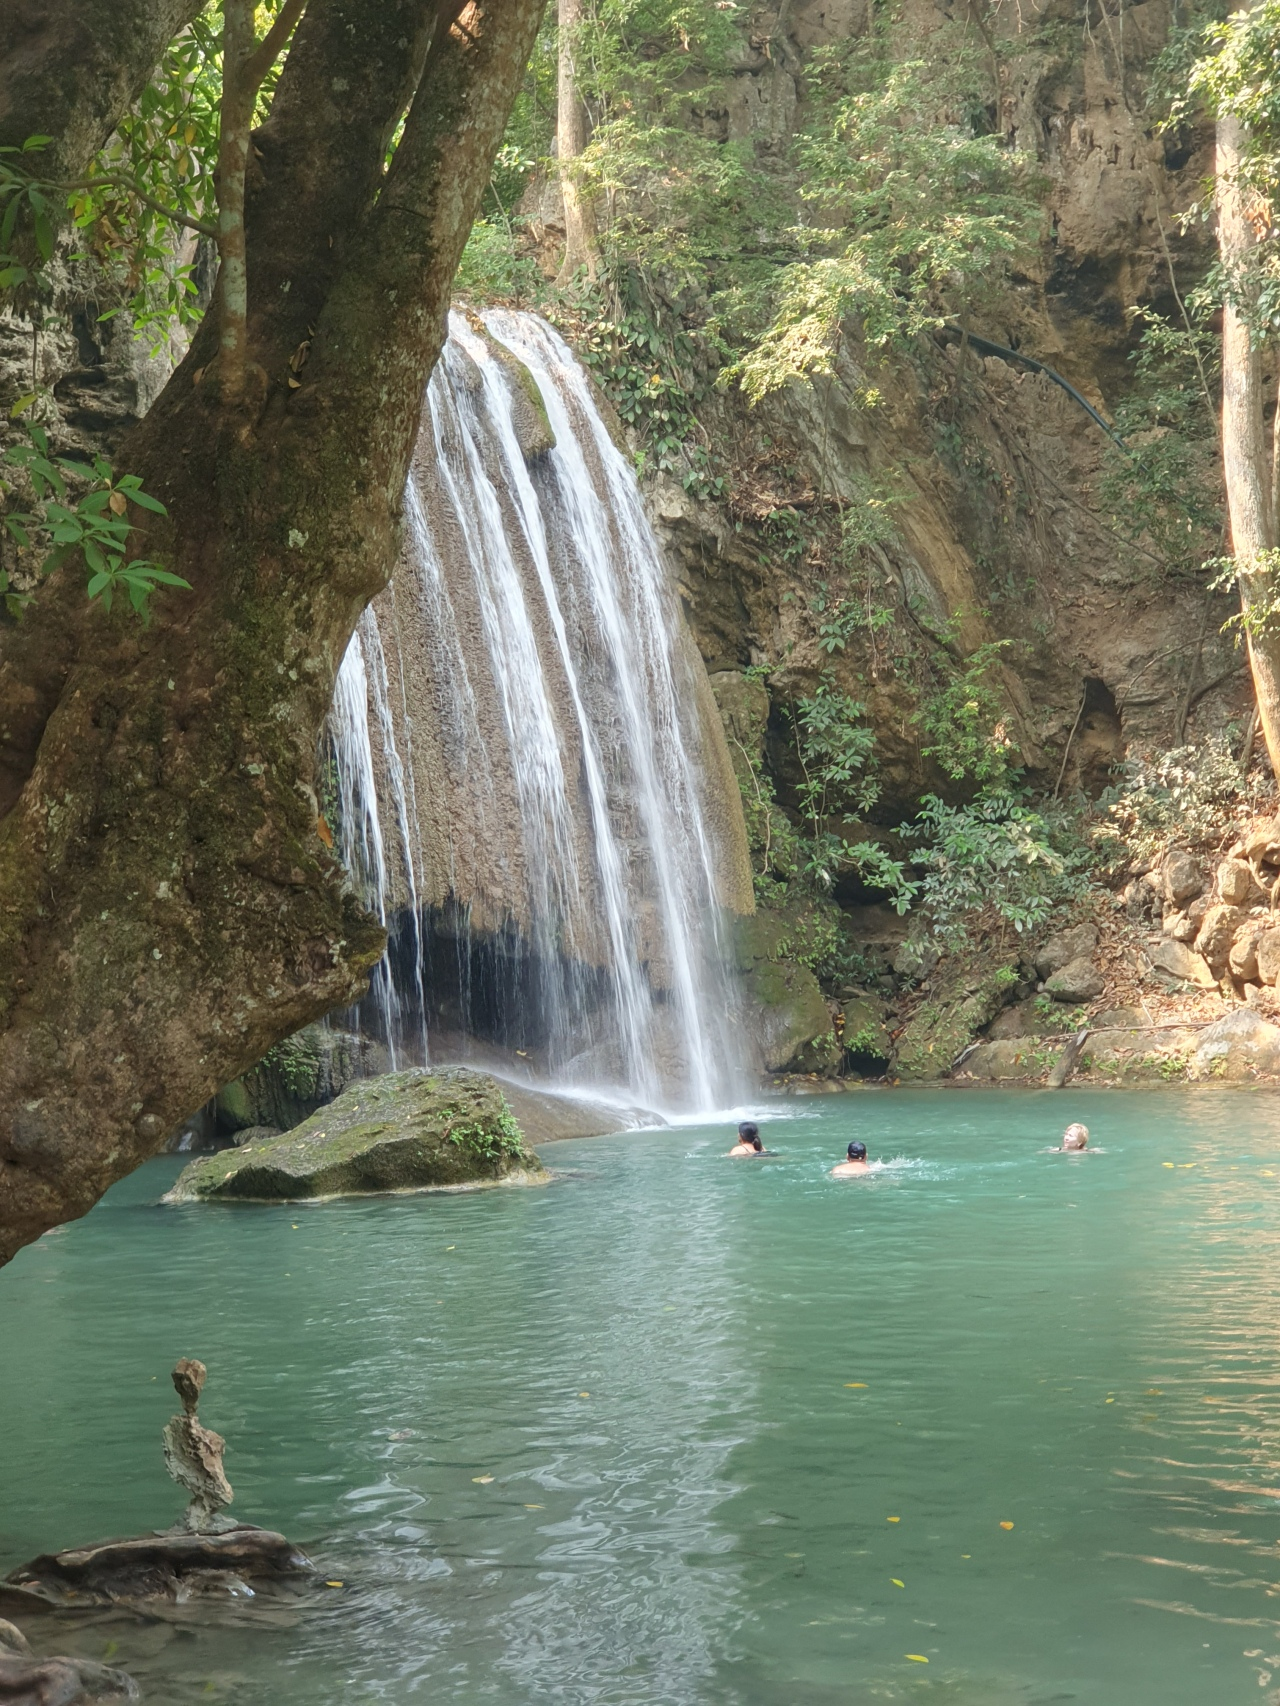 Day 200: Erawan Waterfalls and more coronavirus observations